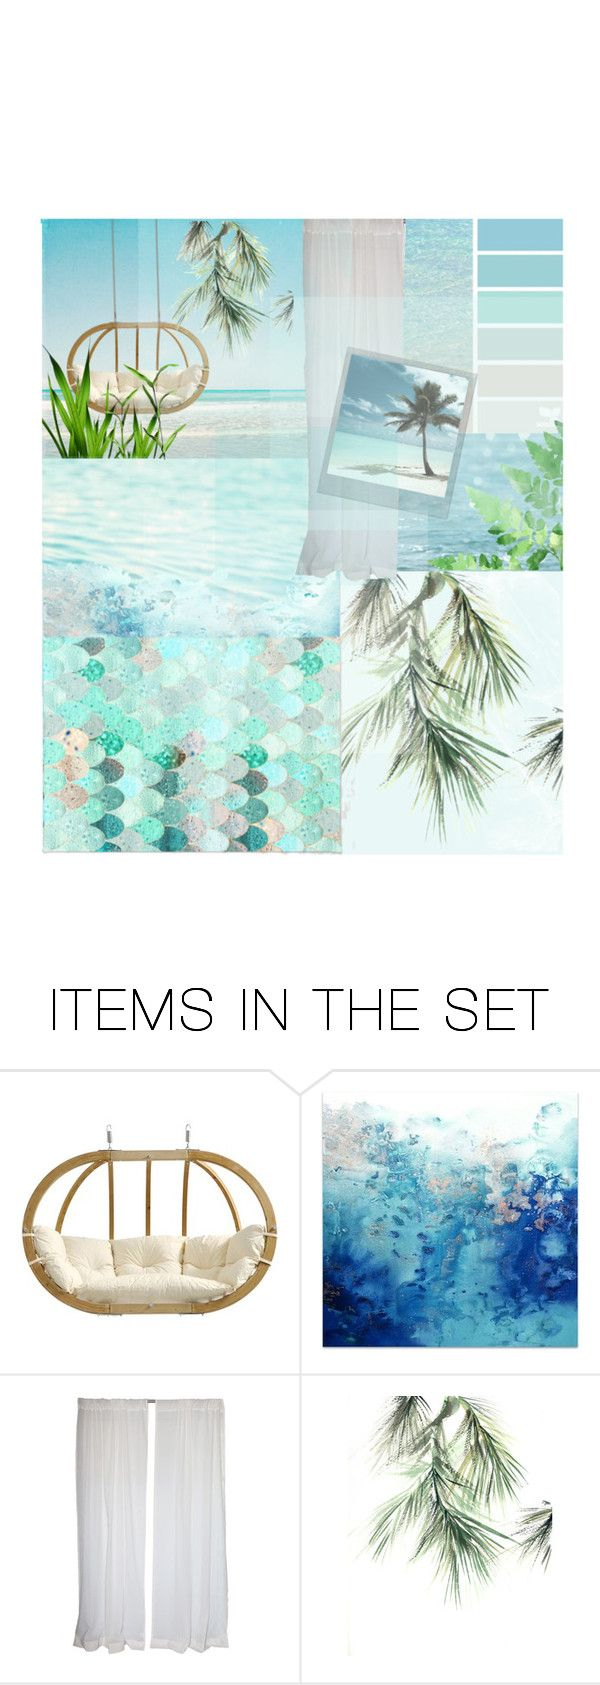 """fly away"" by emelietegebo on Polyvore featuring art"